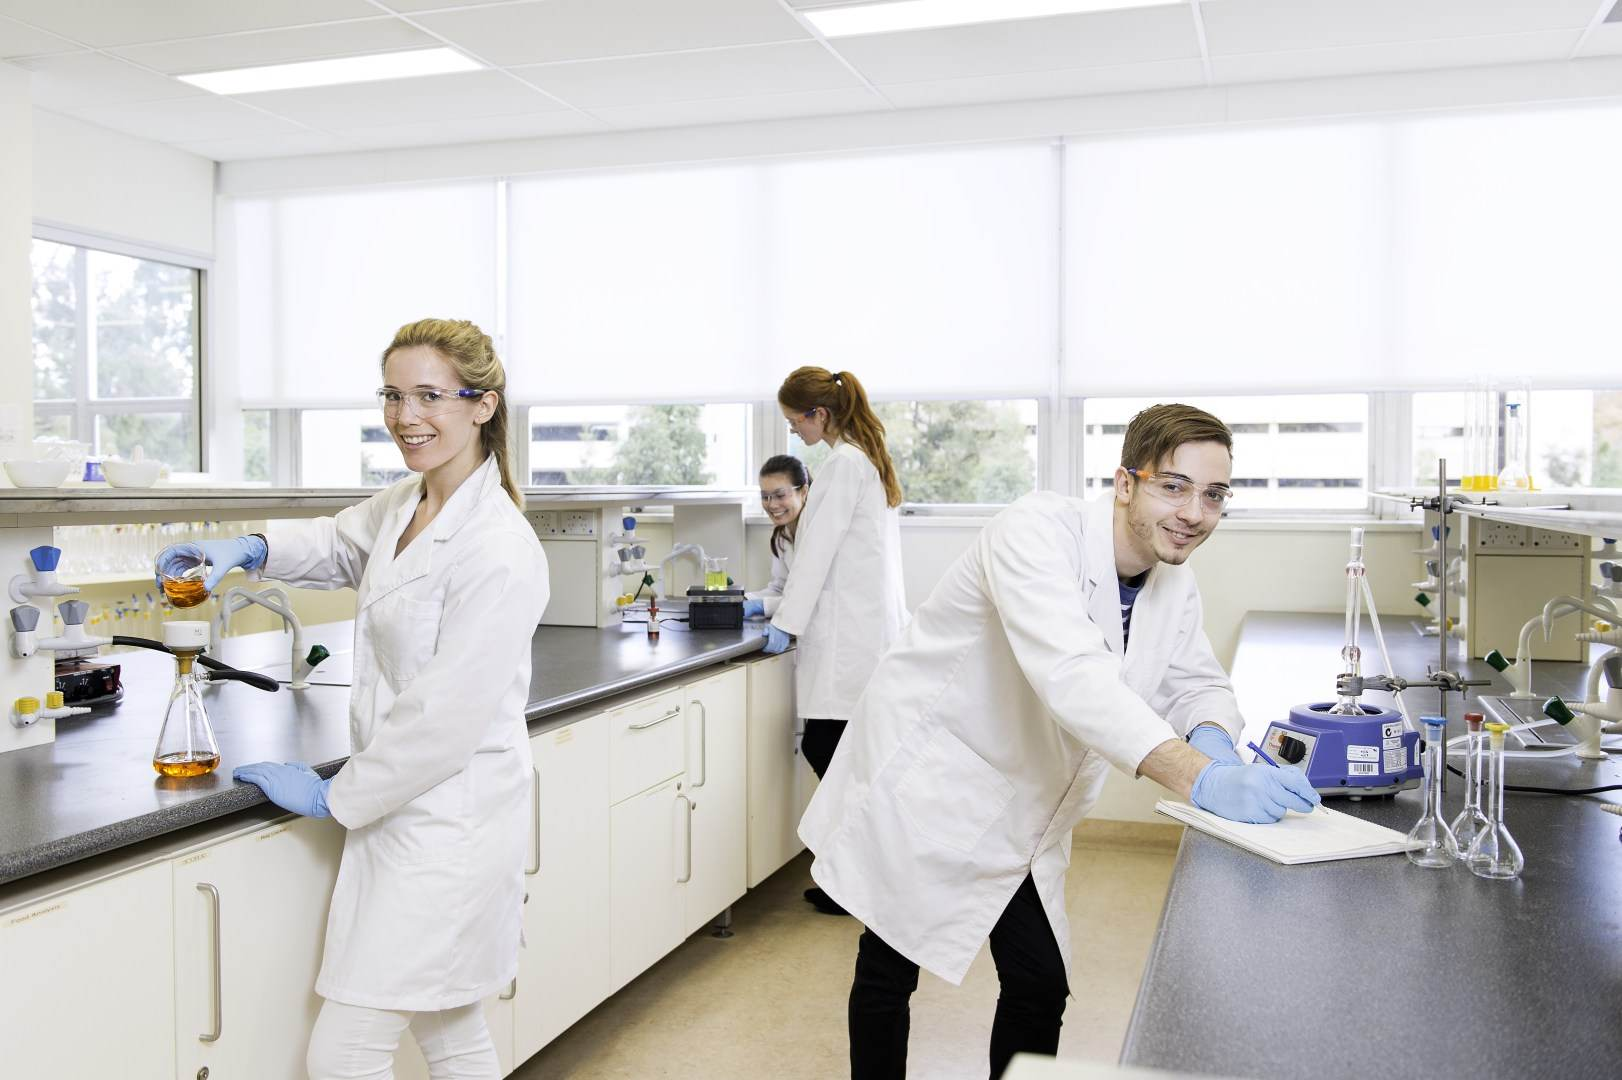 Pharmaceutical science students using campus laboratories